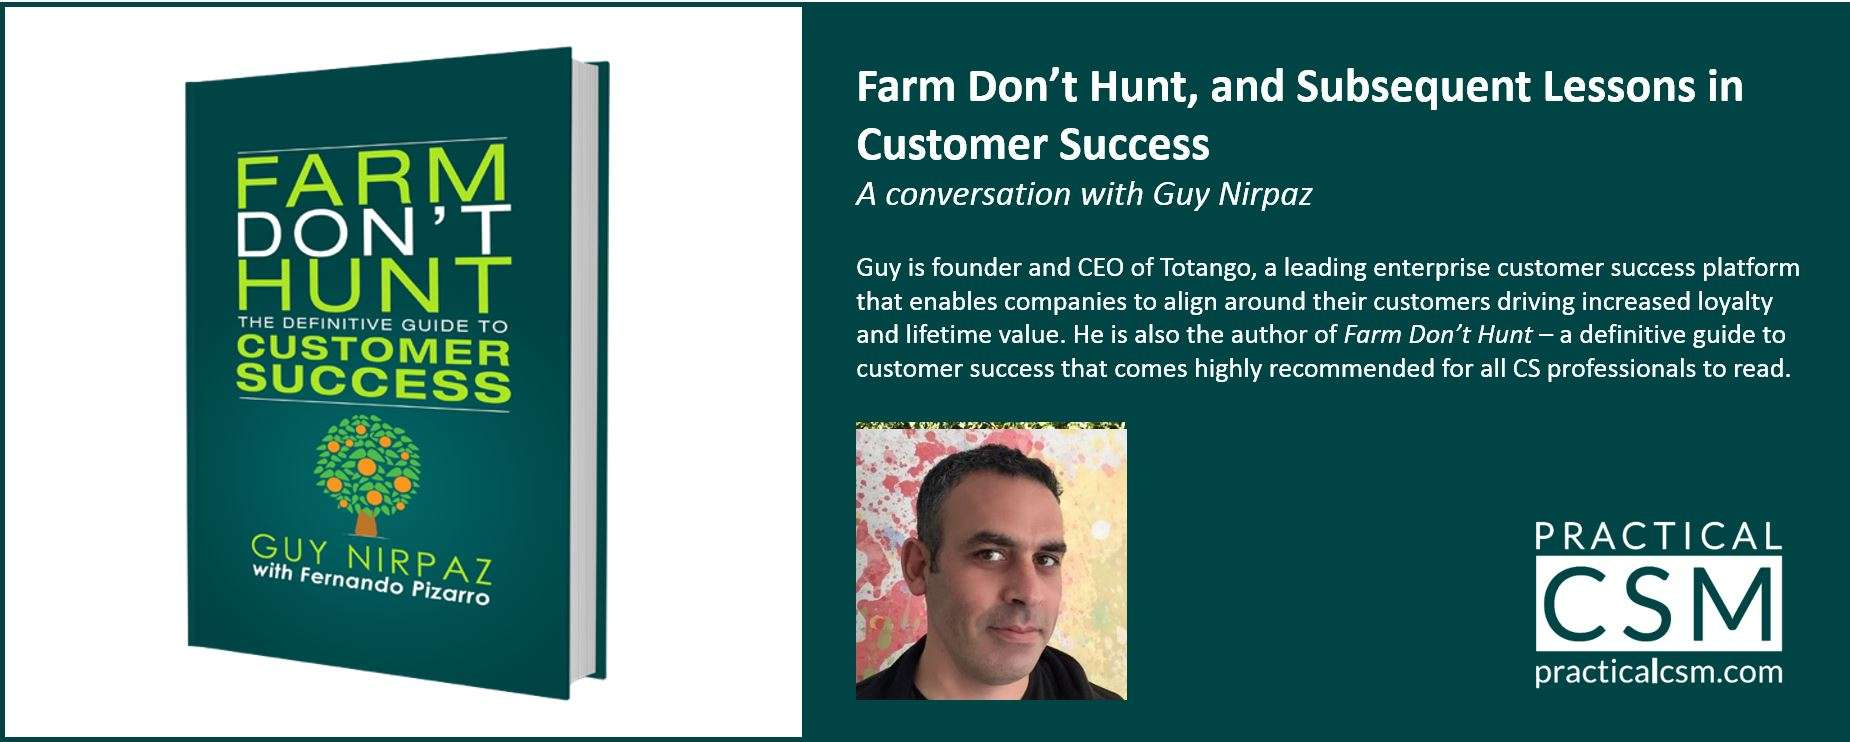 The Definitive Guide to Customer Success Farm Dont Hunt